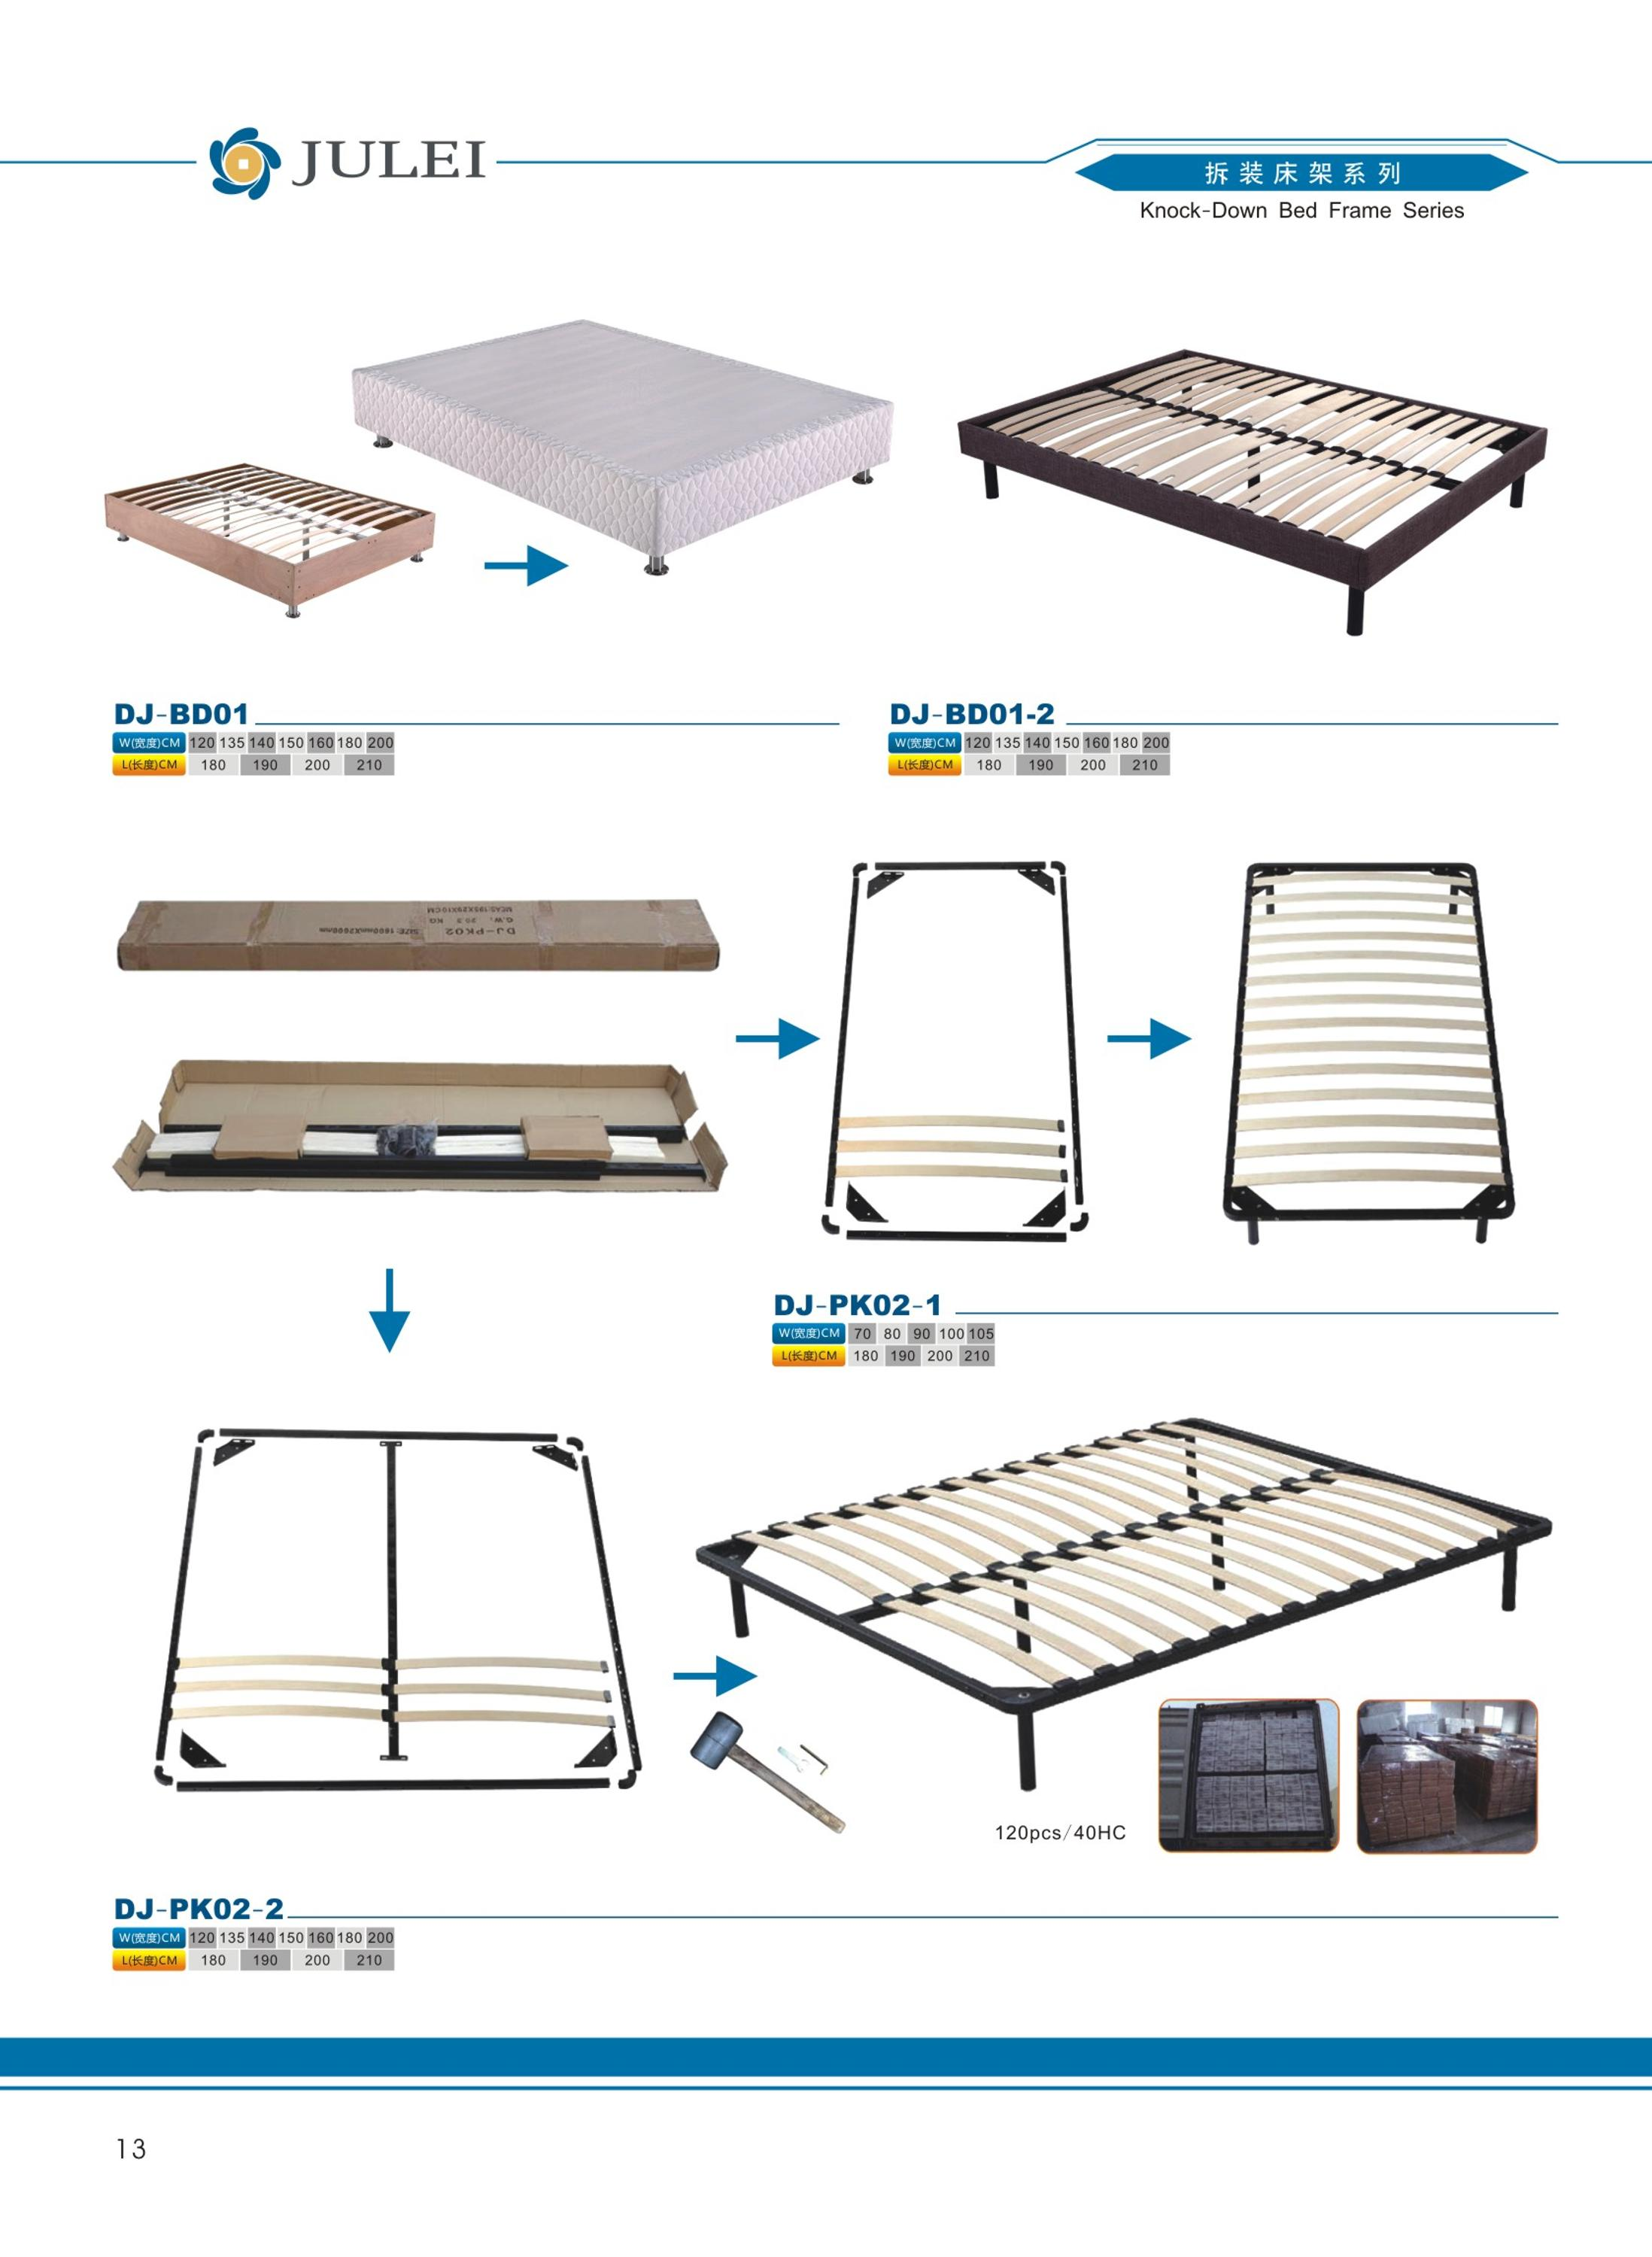 easy assemble knock-down slatted bed frame DJ-PK05